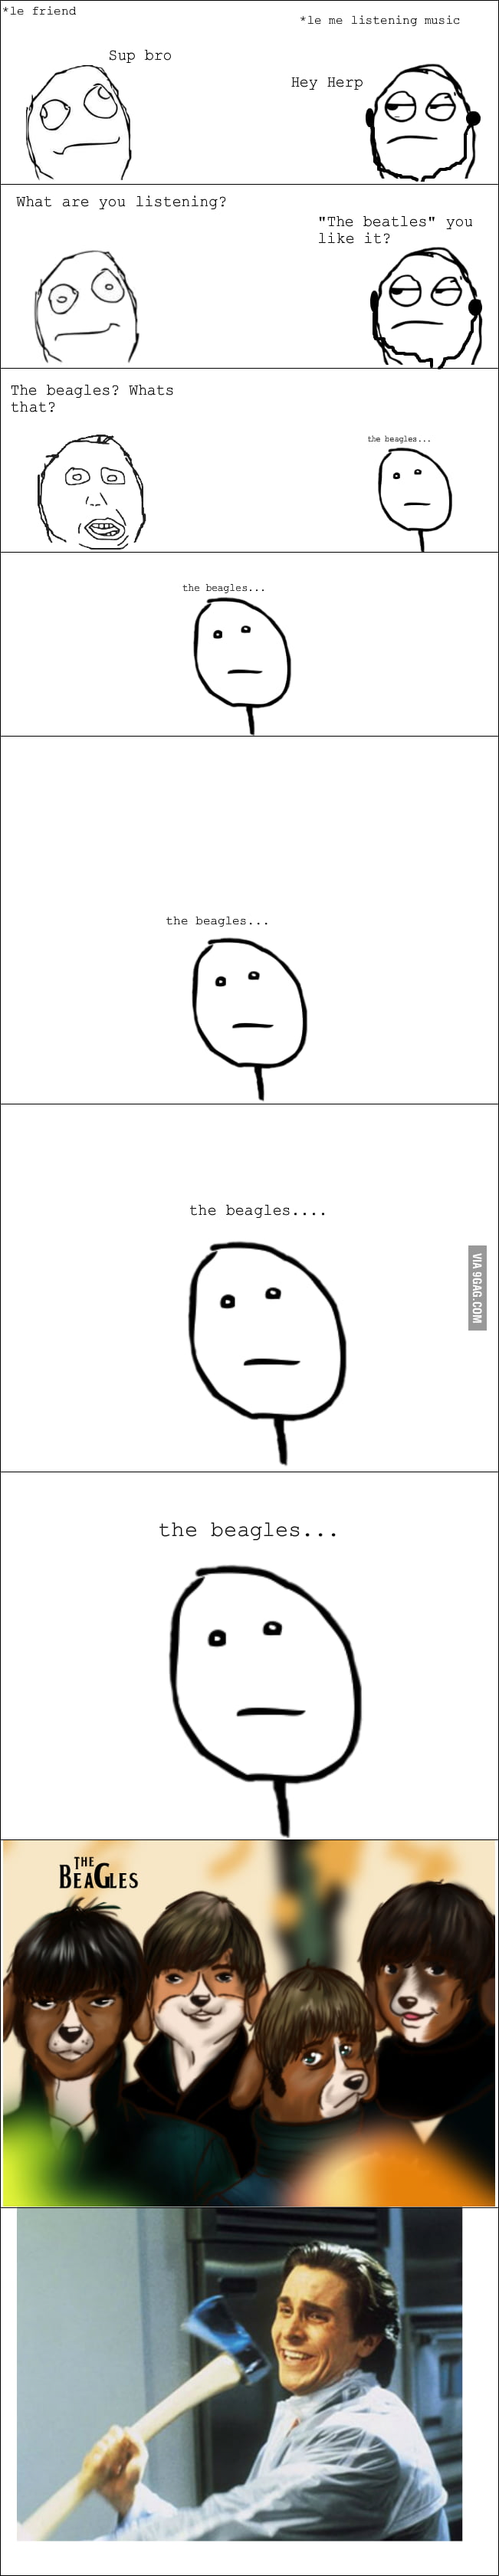 The beagles.....wait whaaaa?